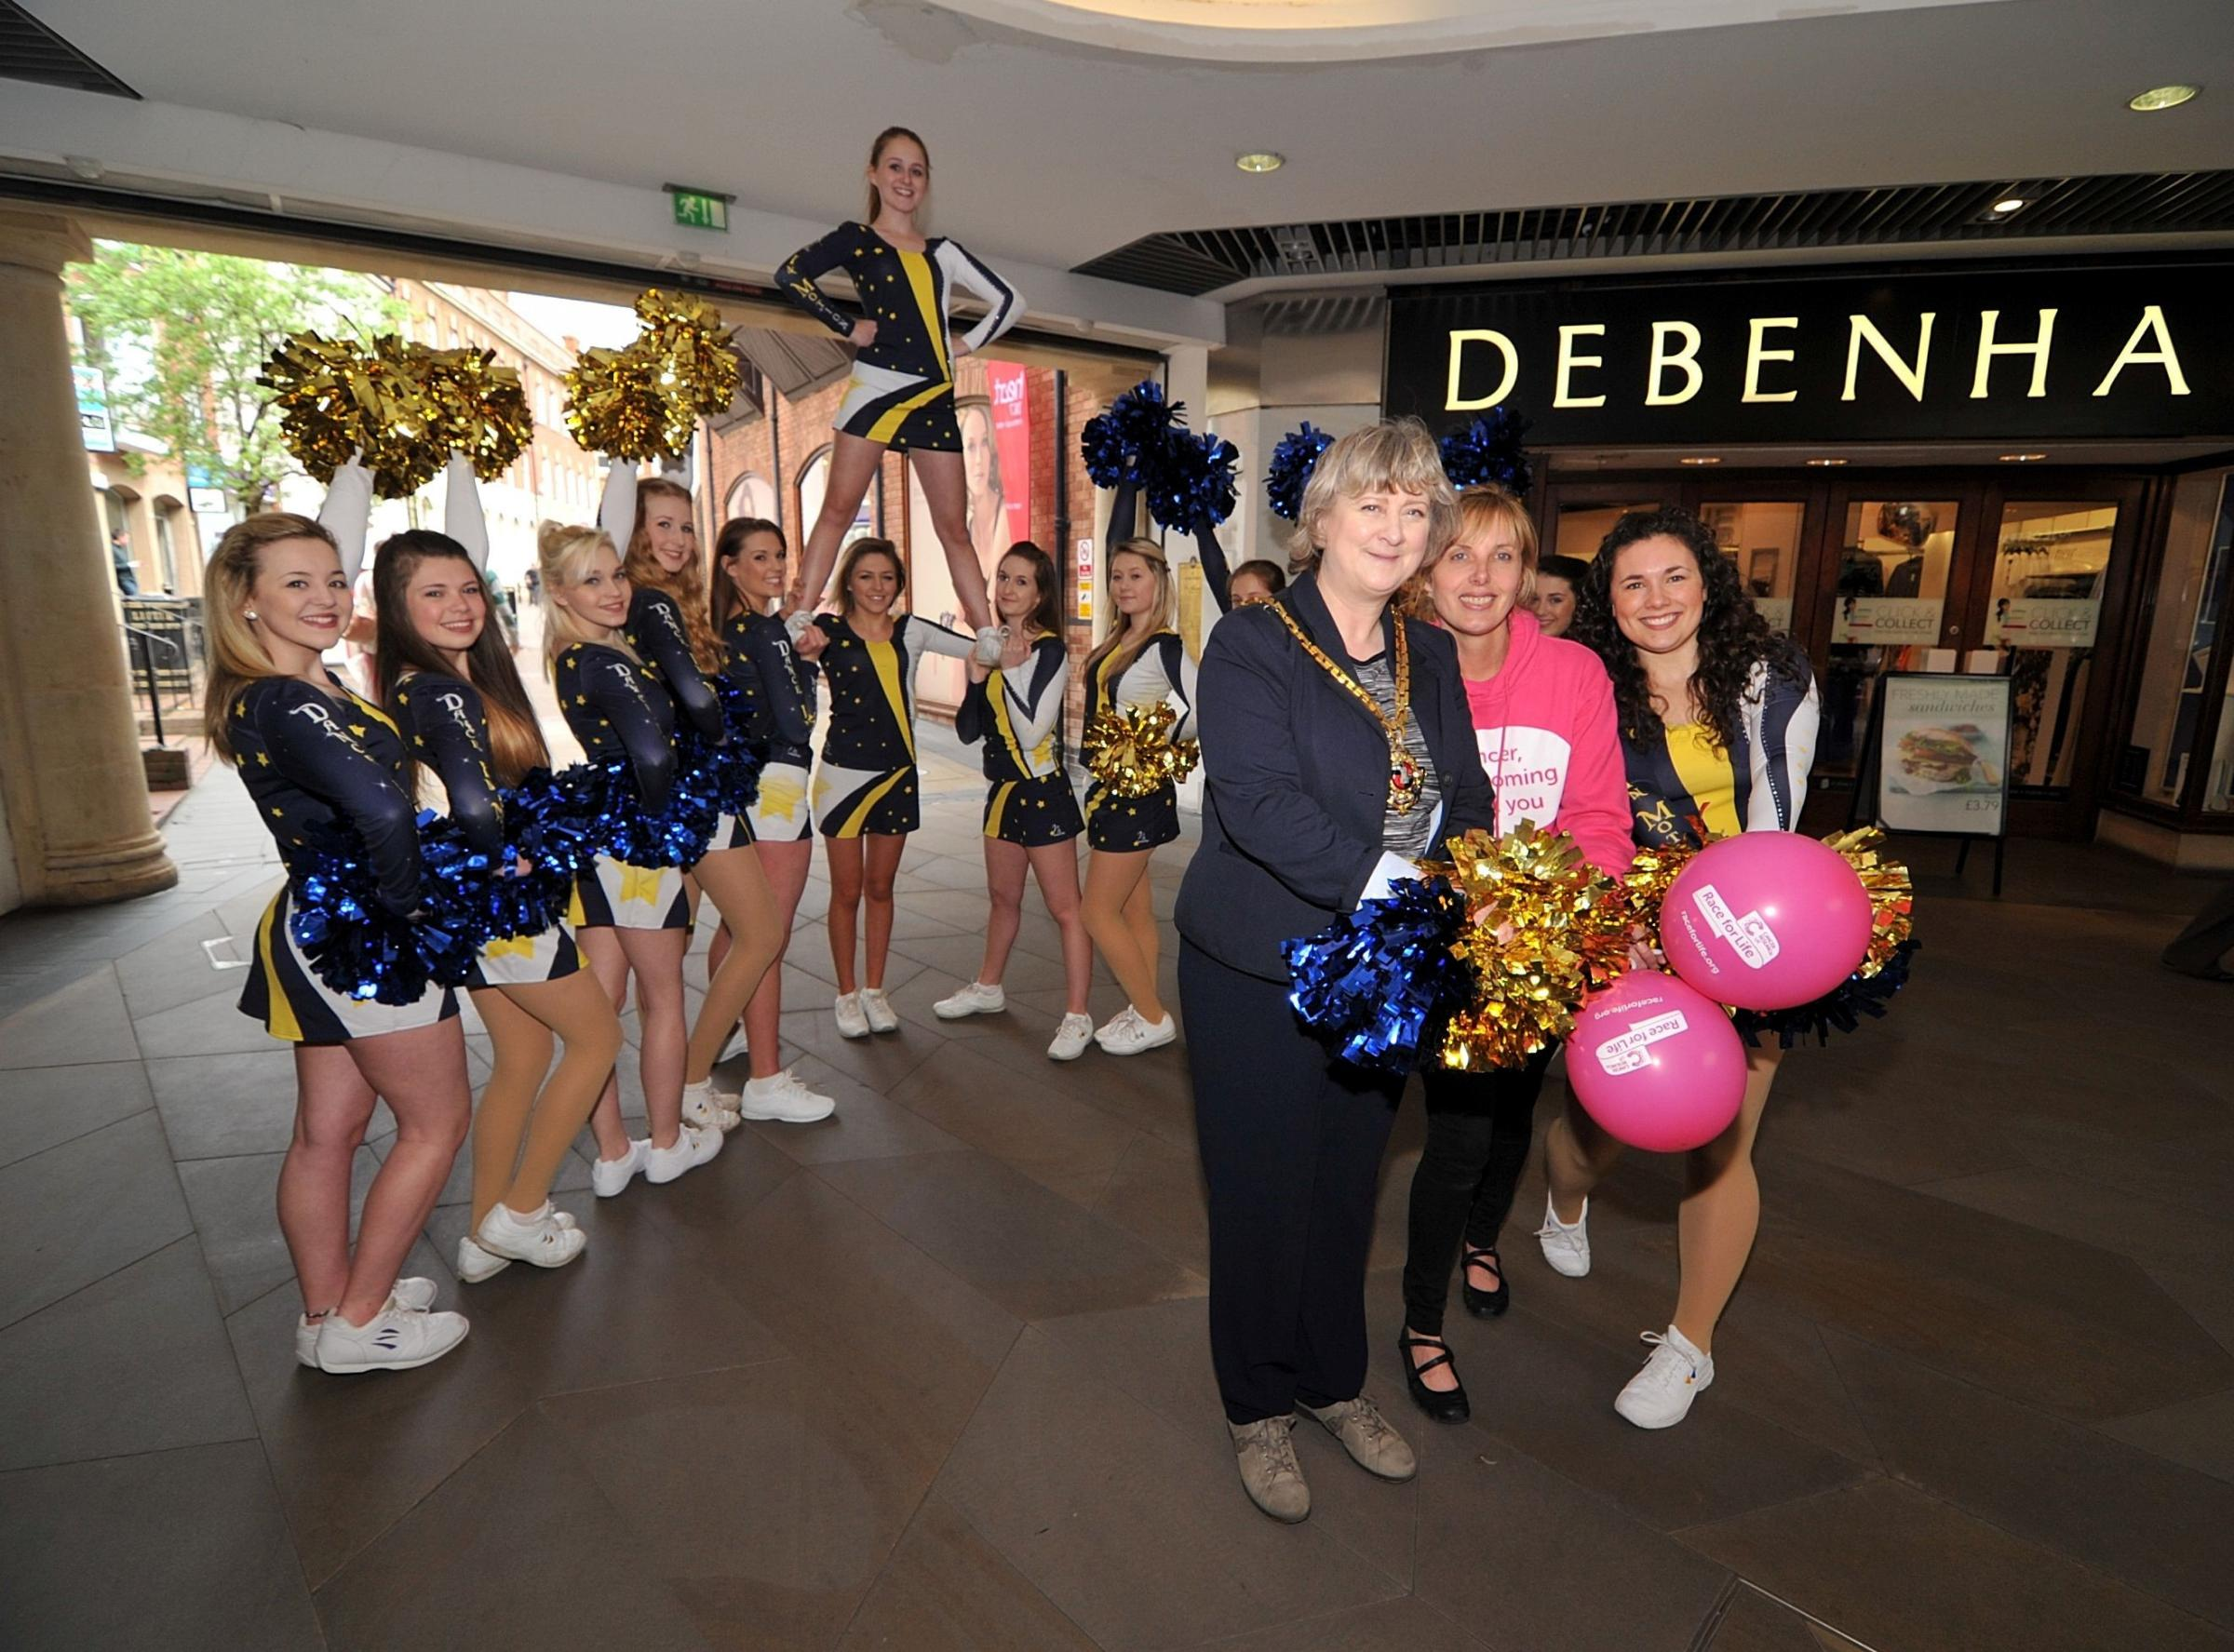 1714582601. 26/04/14. Mayor of Worcester Councillor Pat Agar, Cancer Research UK events manager Michelle Leighton and Gemma Hinton from Dance in Motion with the rest of the cheerleading team launch this